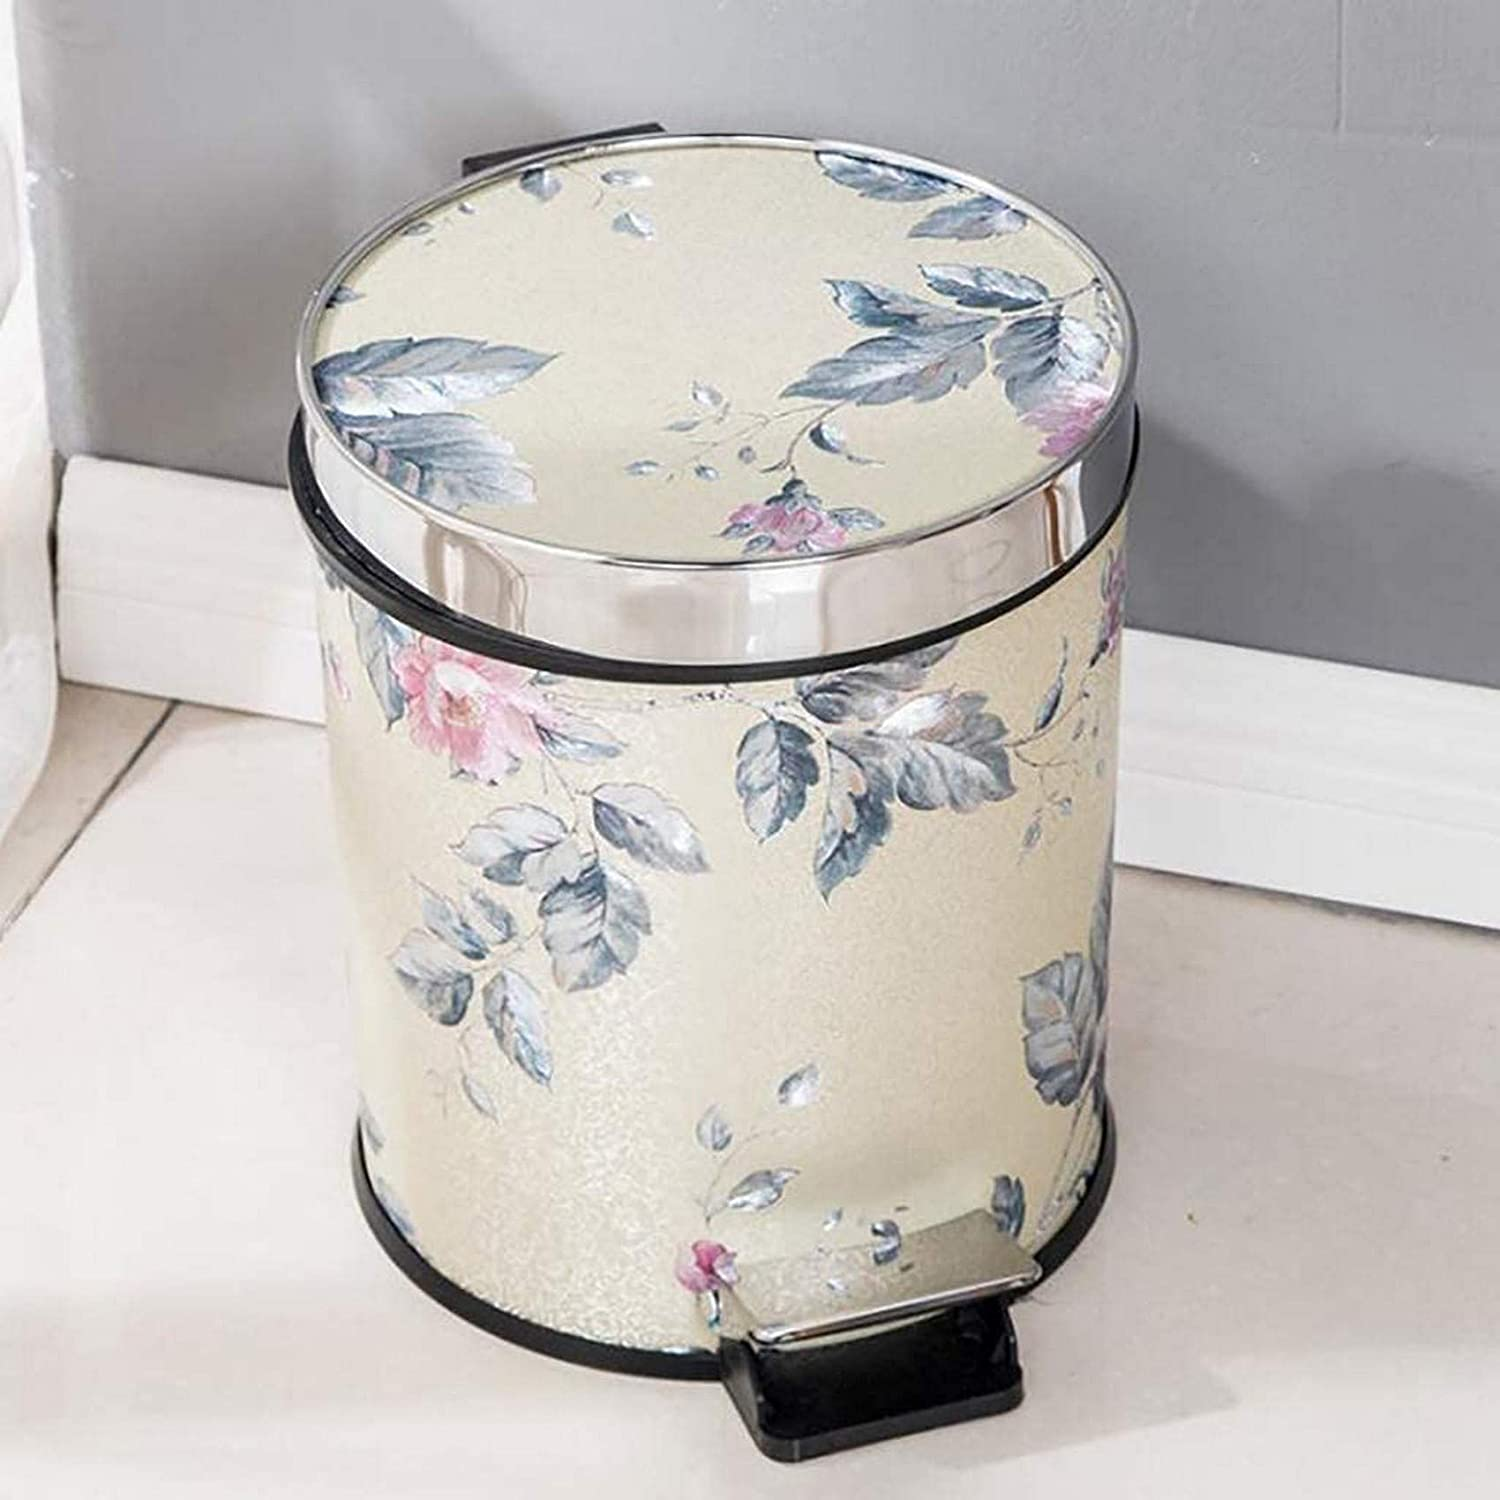 NSYNSY Step Trash Can with Lid,Leather Pedal Garbage Can,dustbin Plastic Wastebasket with Removable Inner Buckets for Bathroom Kitchen Office L 25x25x30cm(10x10x12inch)